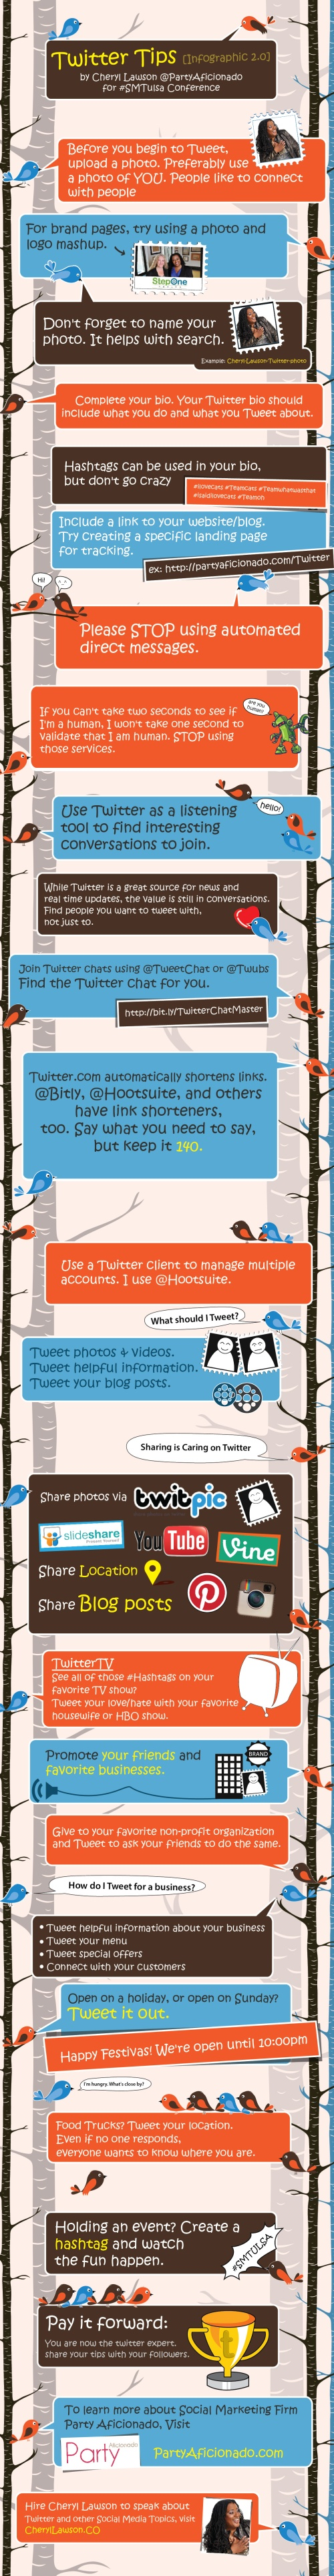 twitter_infographic_2.0_final